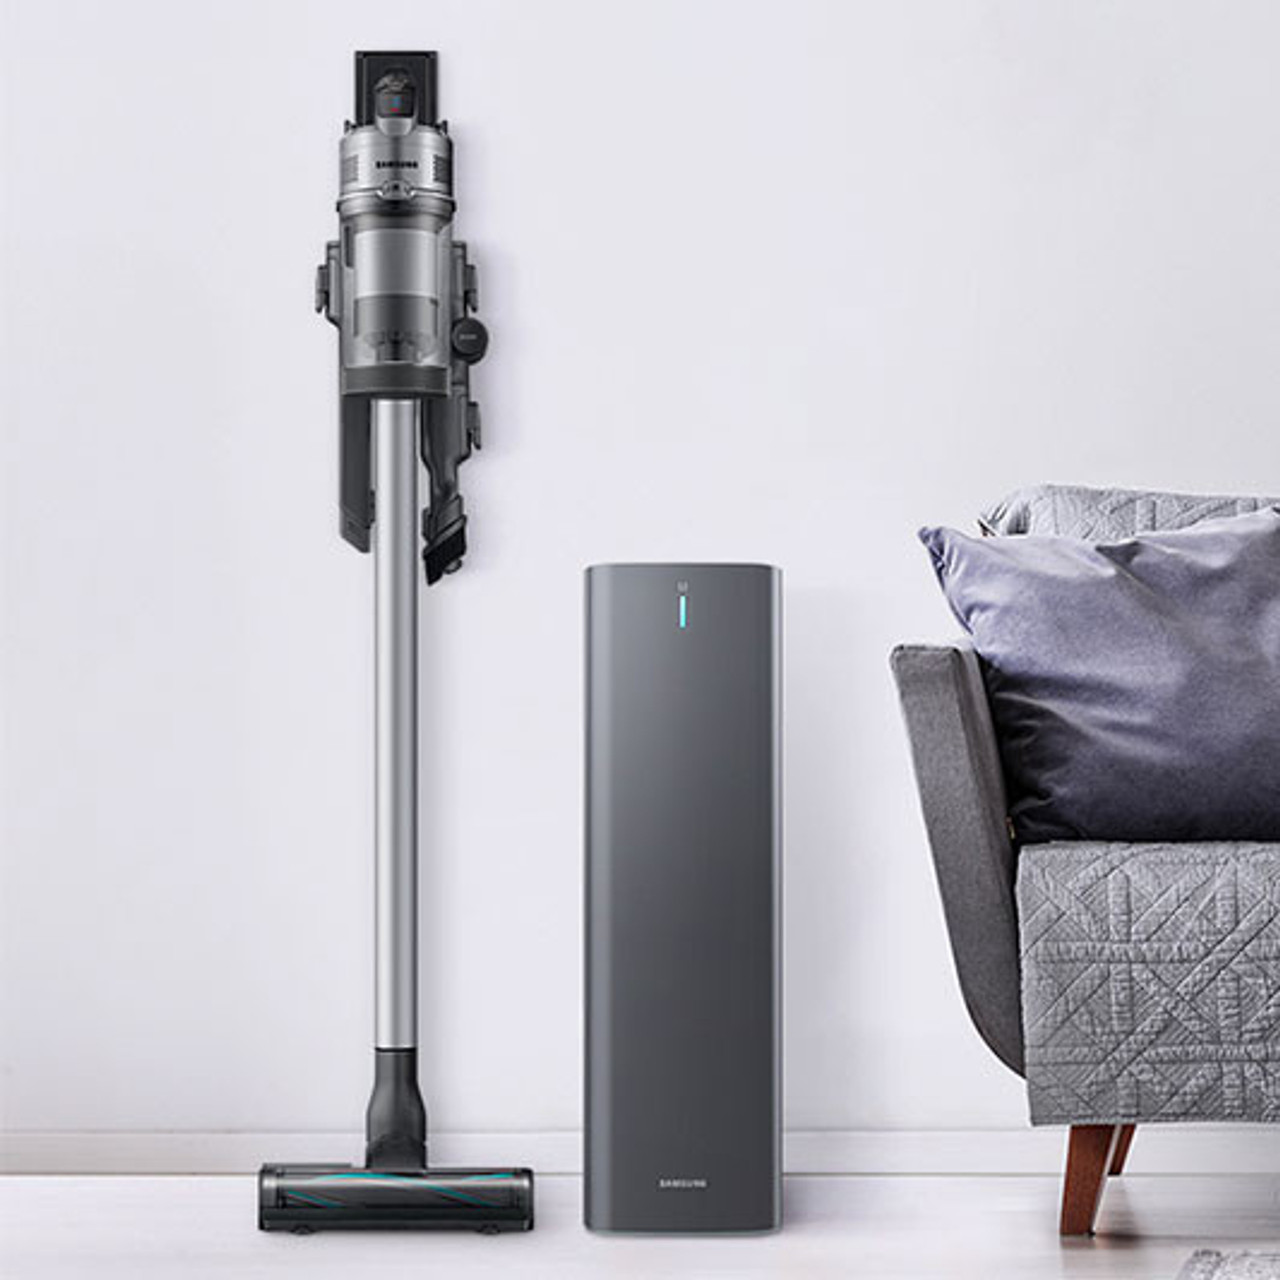 Samsung VCSA-SAE90A Jet Clean Station™ with Air Pulse Technology - Silver